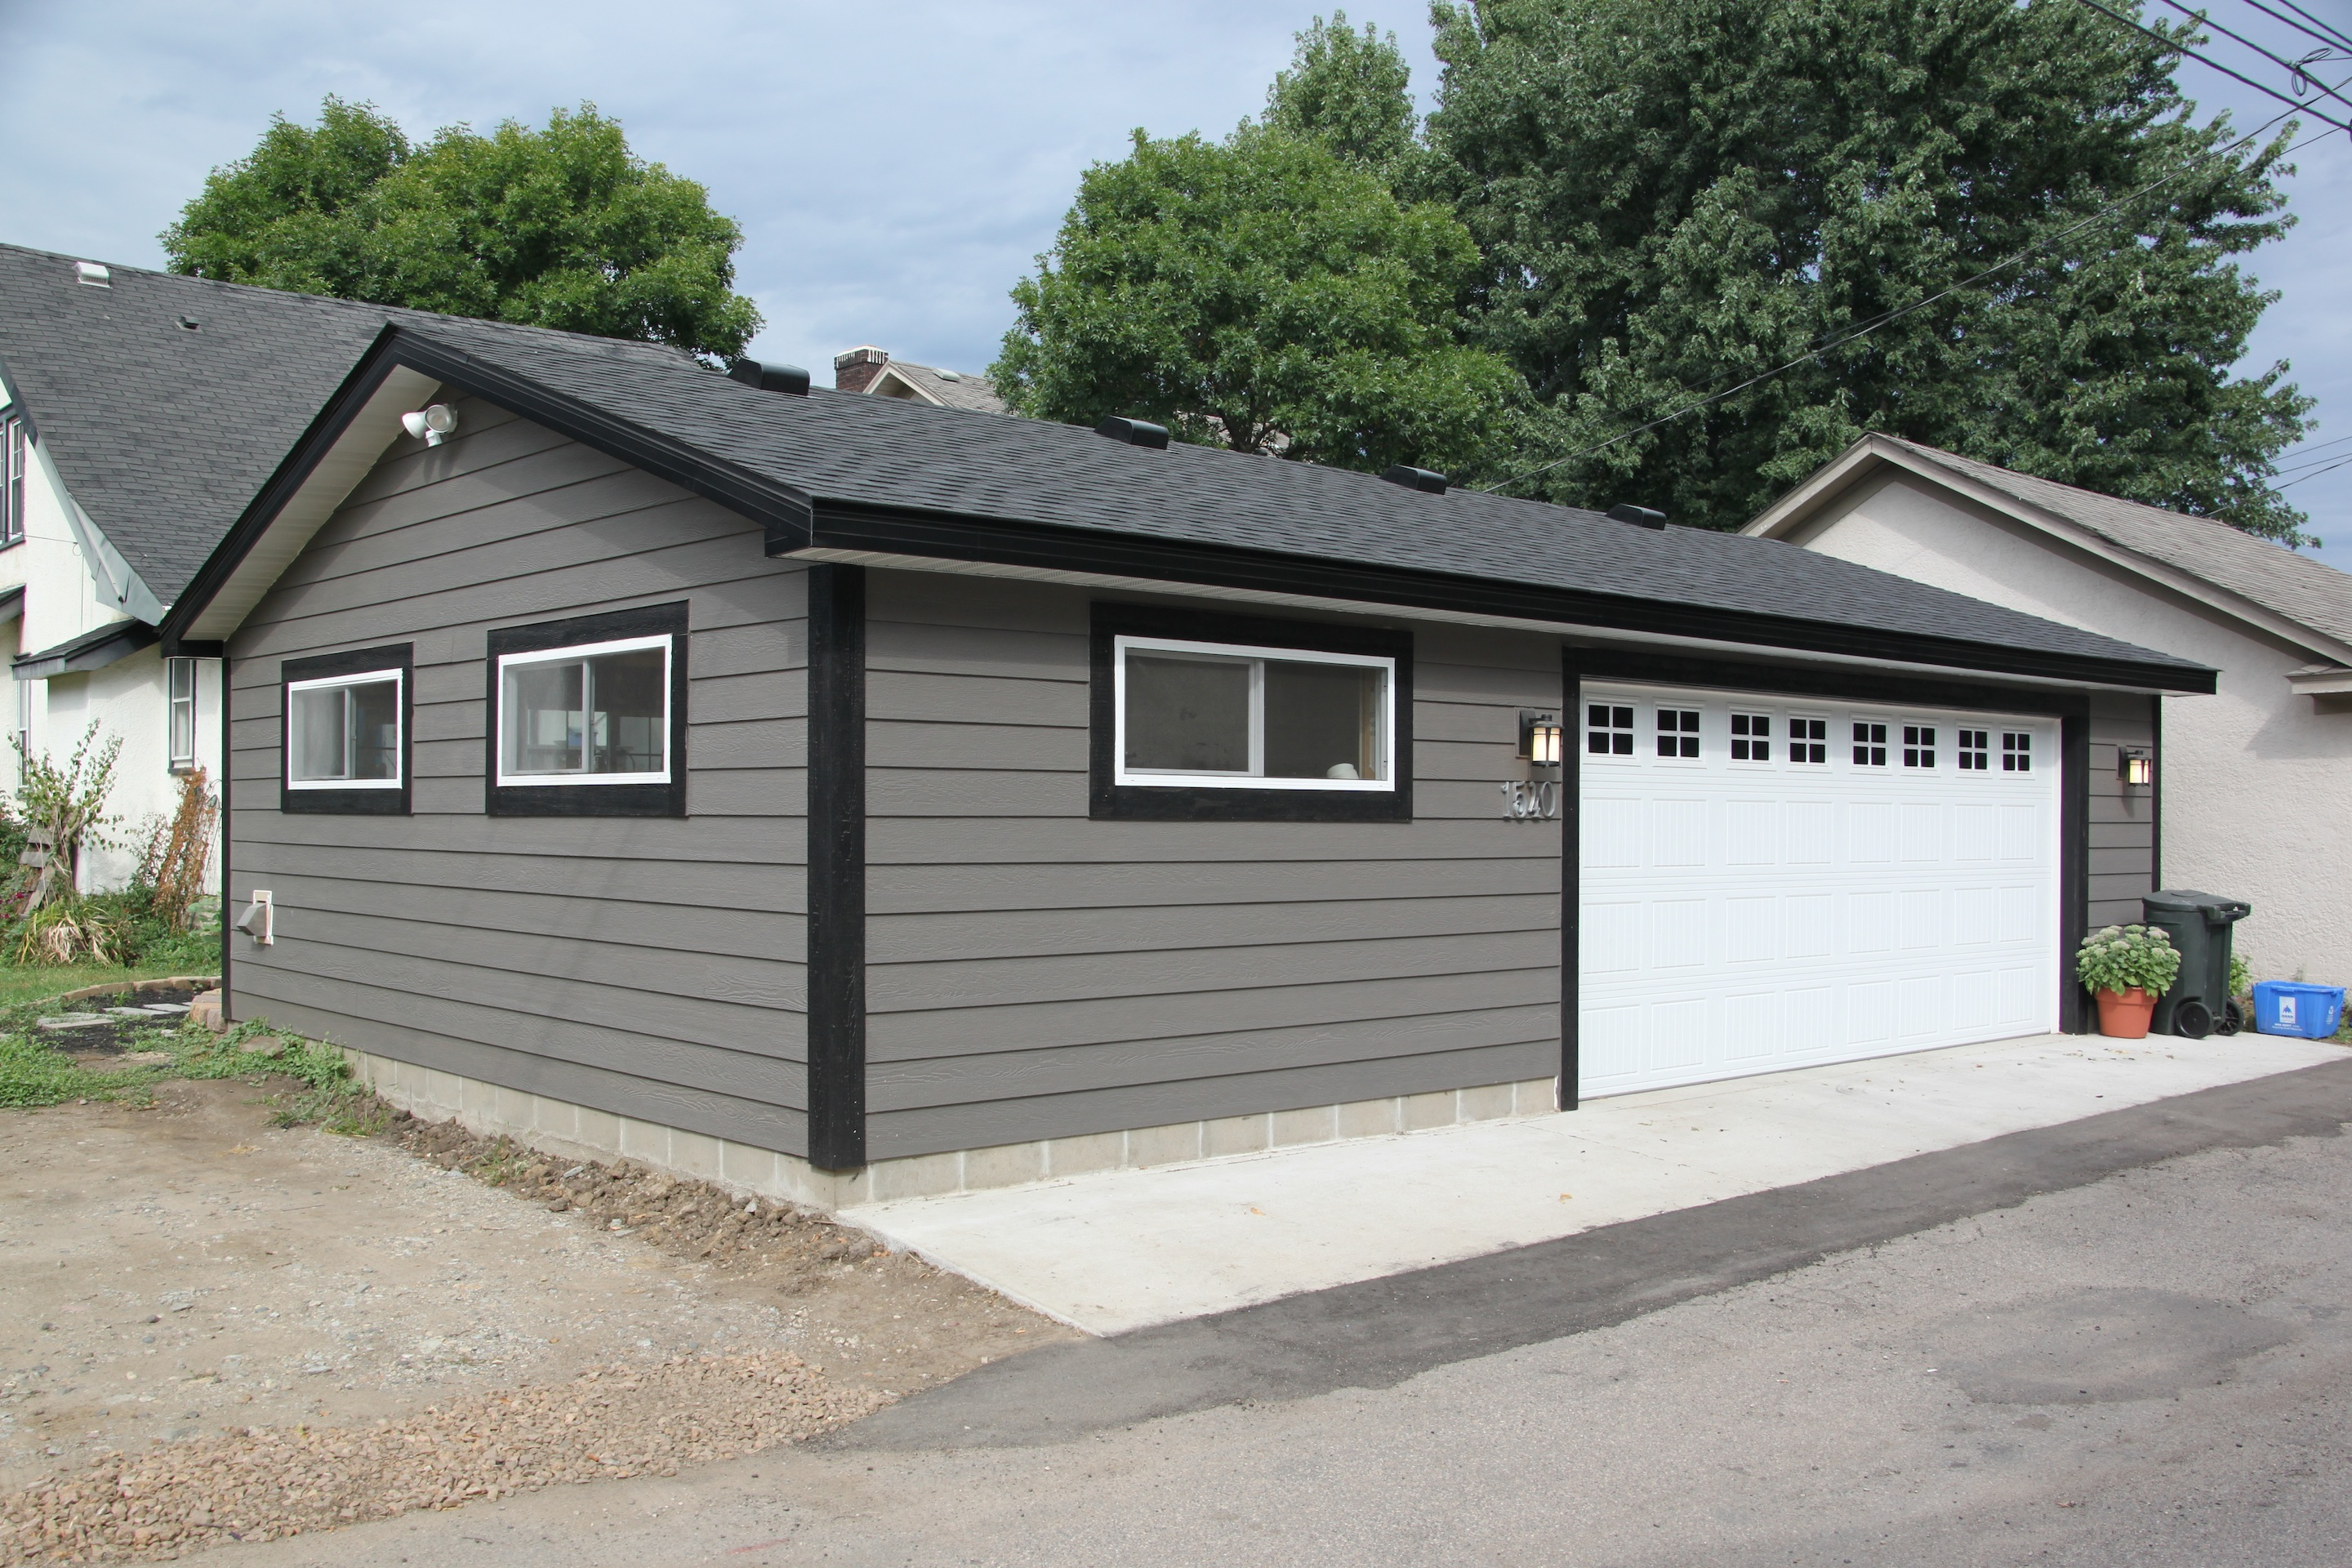 Mn garage contractors western construction inc blog for Cost to build a house in mn